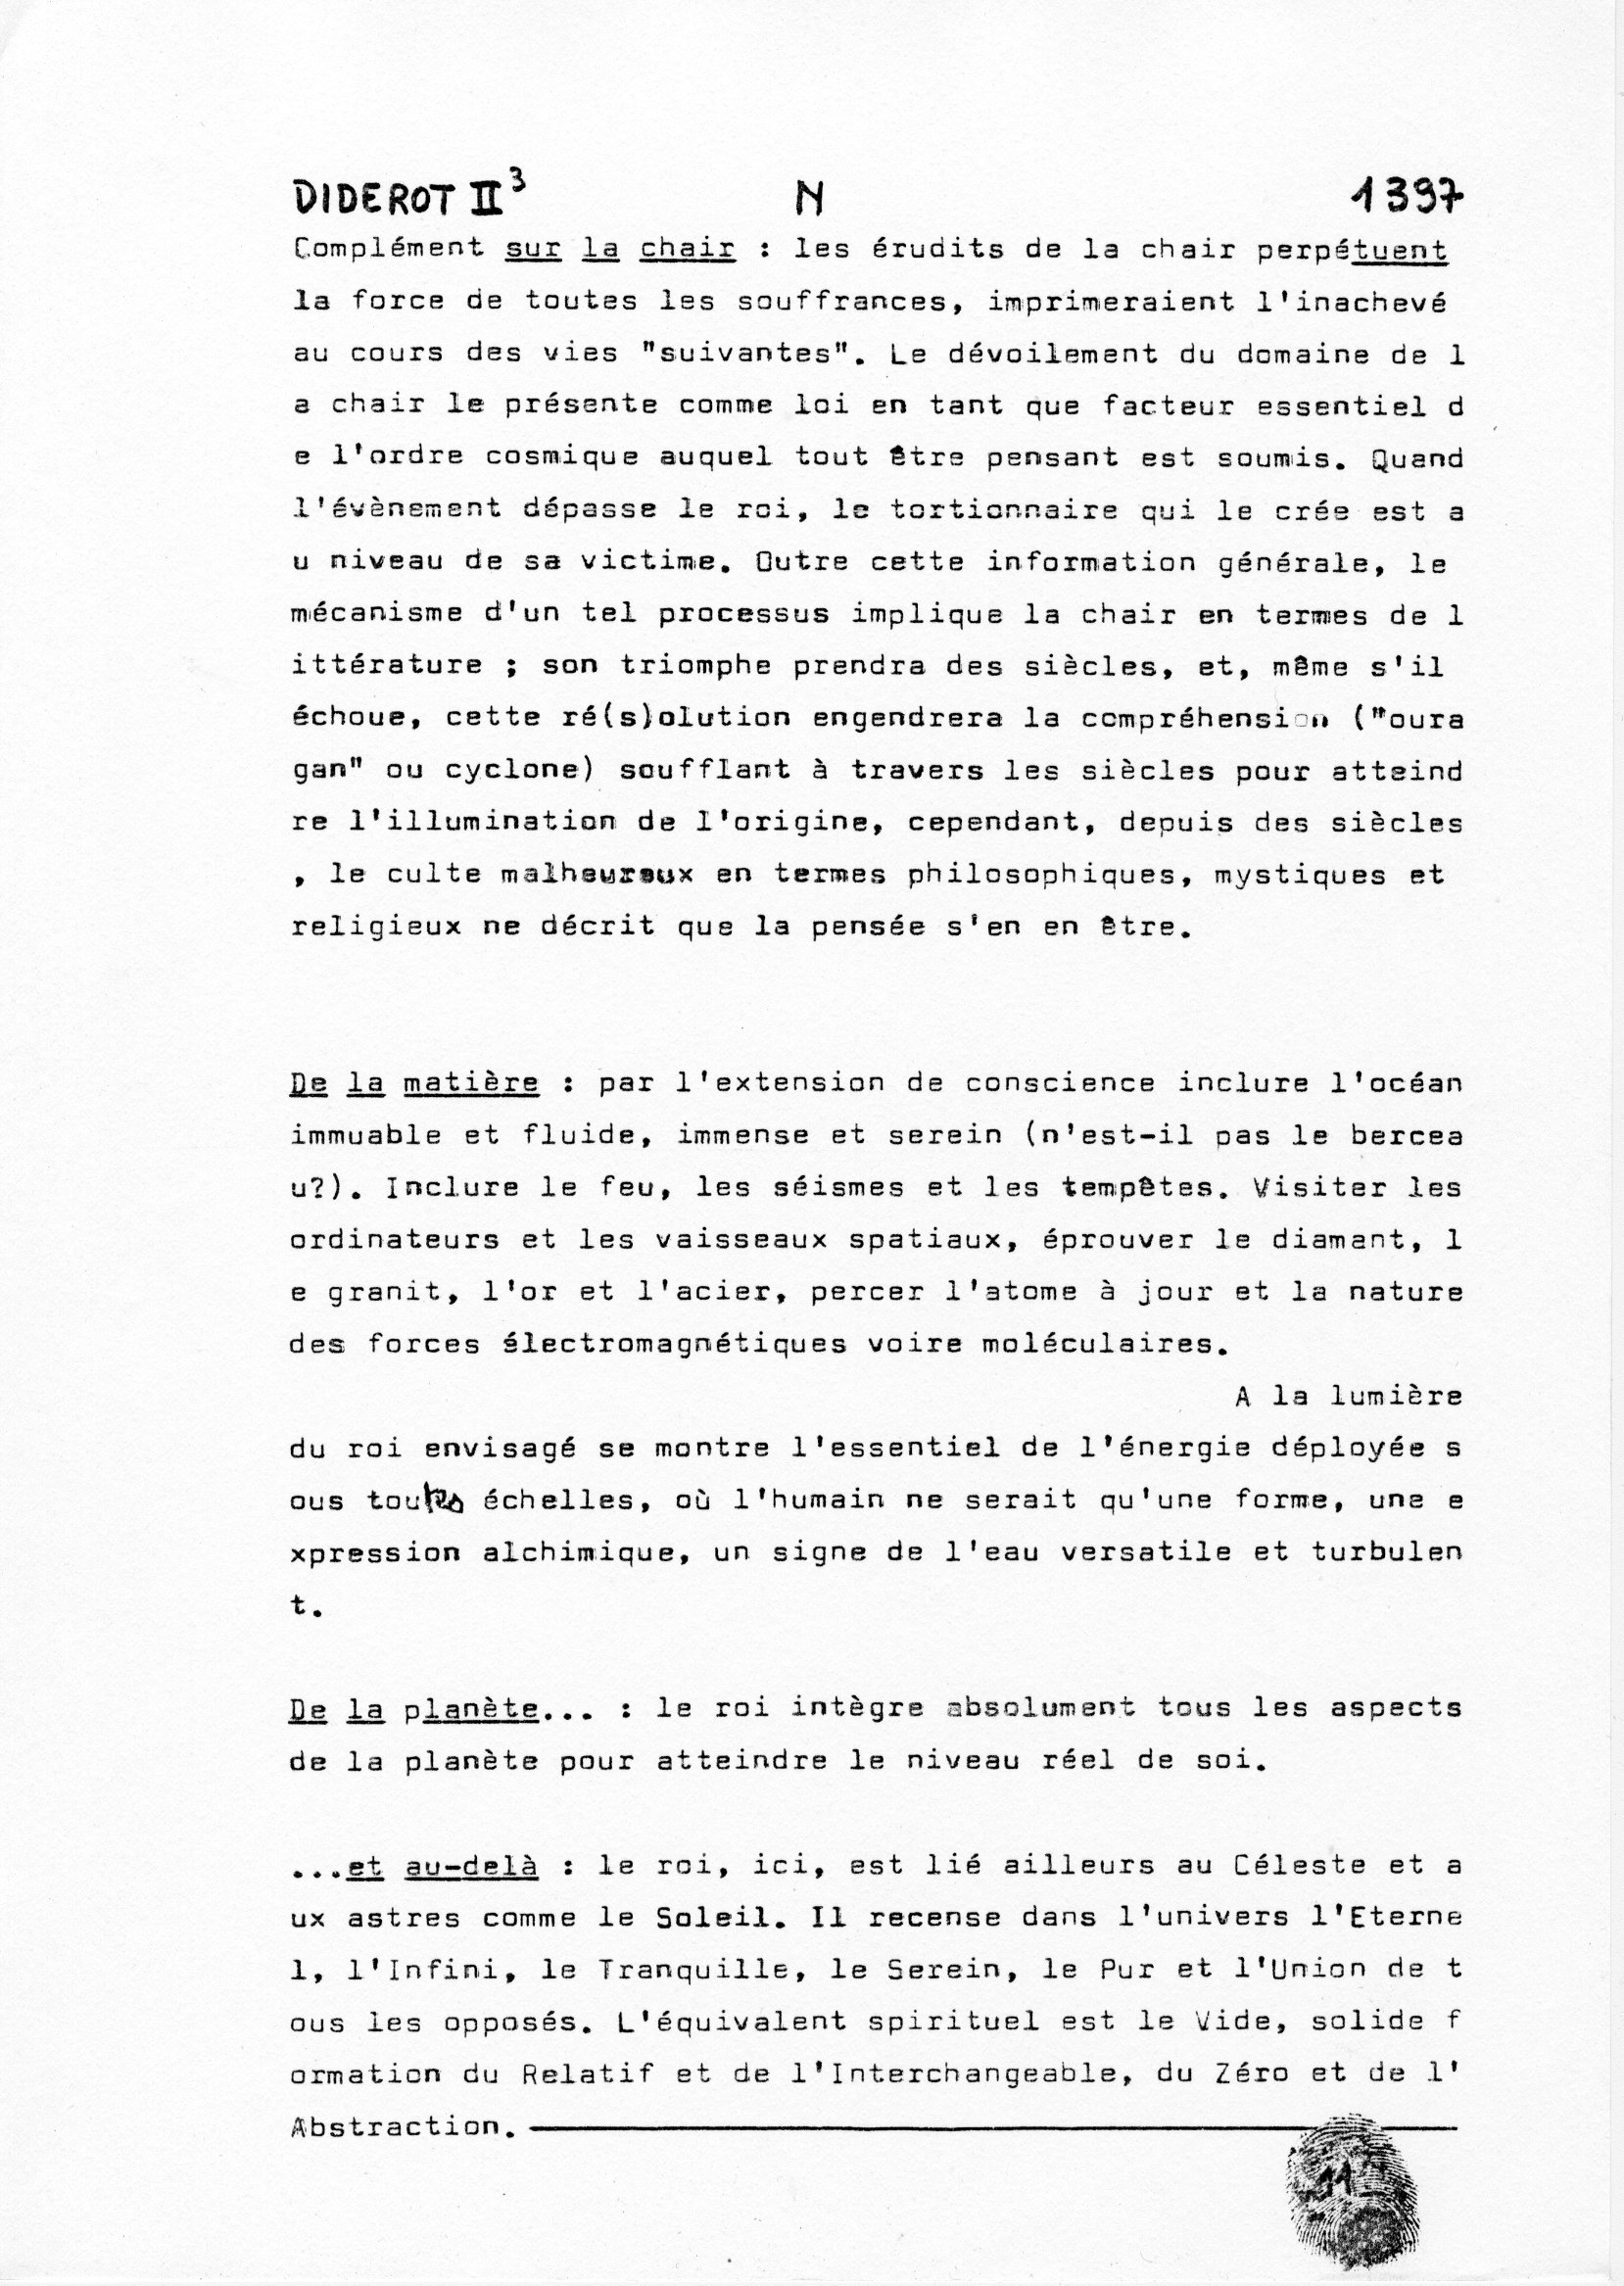 page 1397 Diderot II p3 N